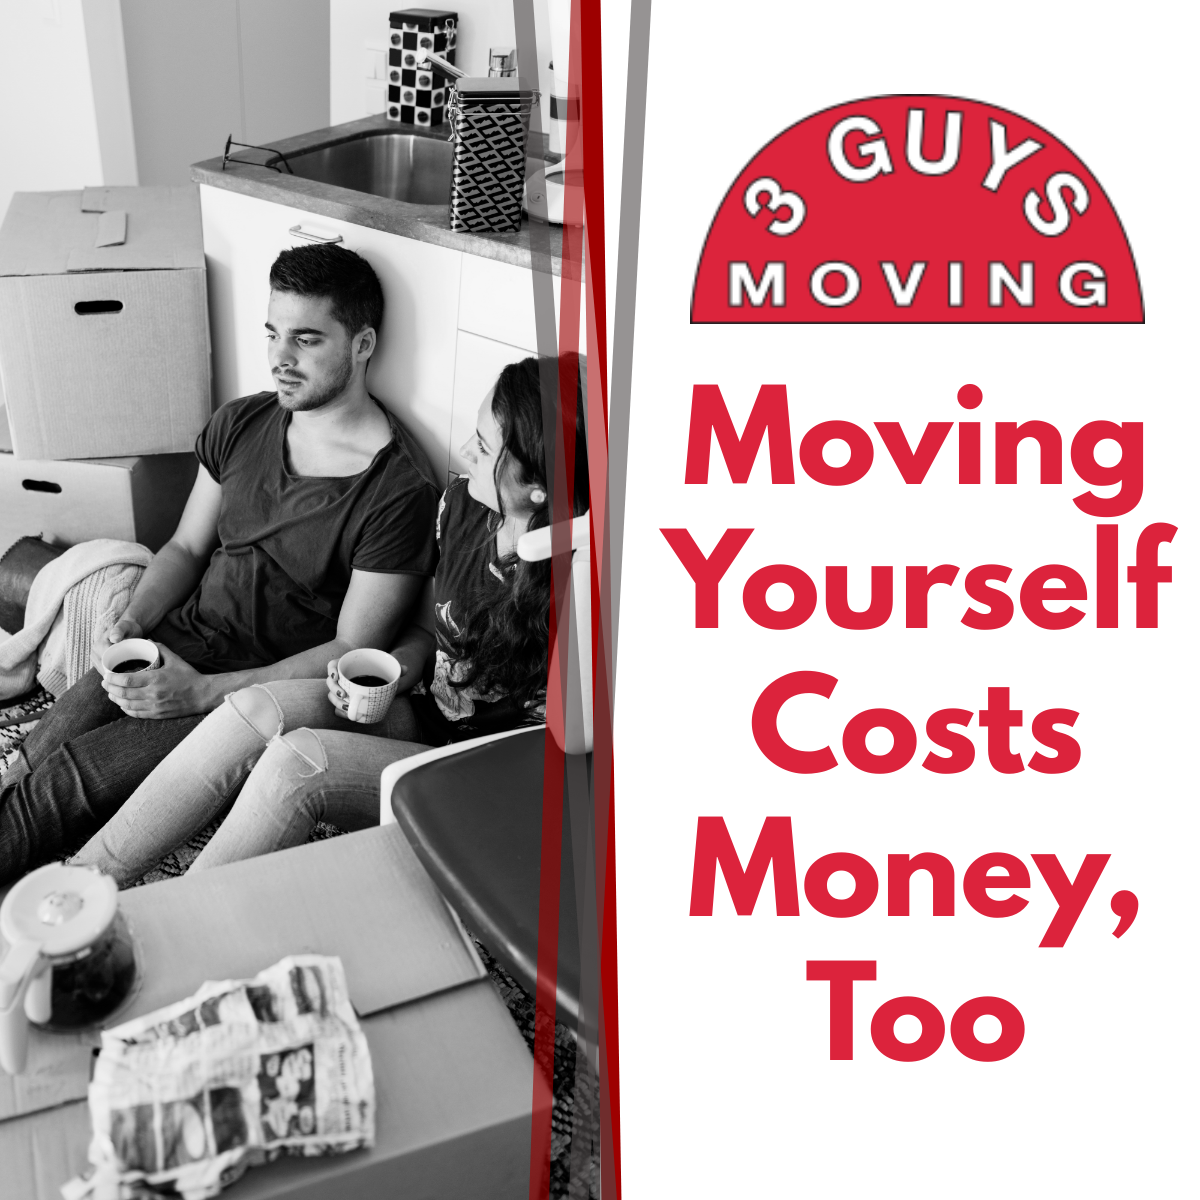 Moving Yourself Costs Money - Moving Yourself Costs Money, Too